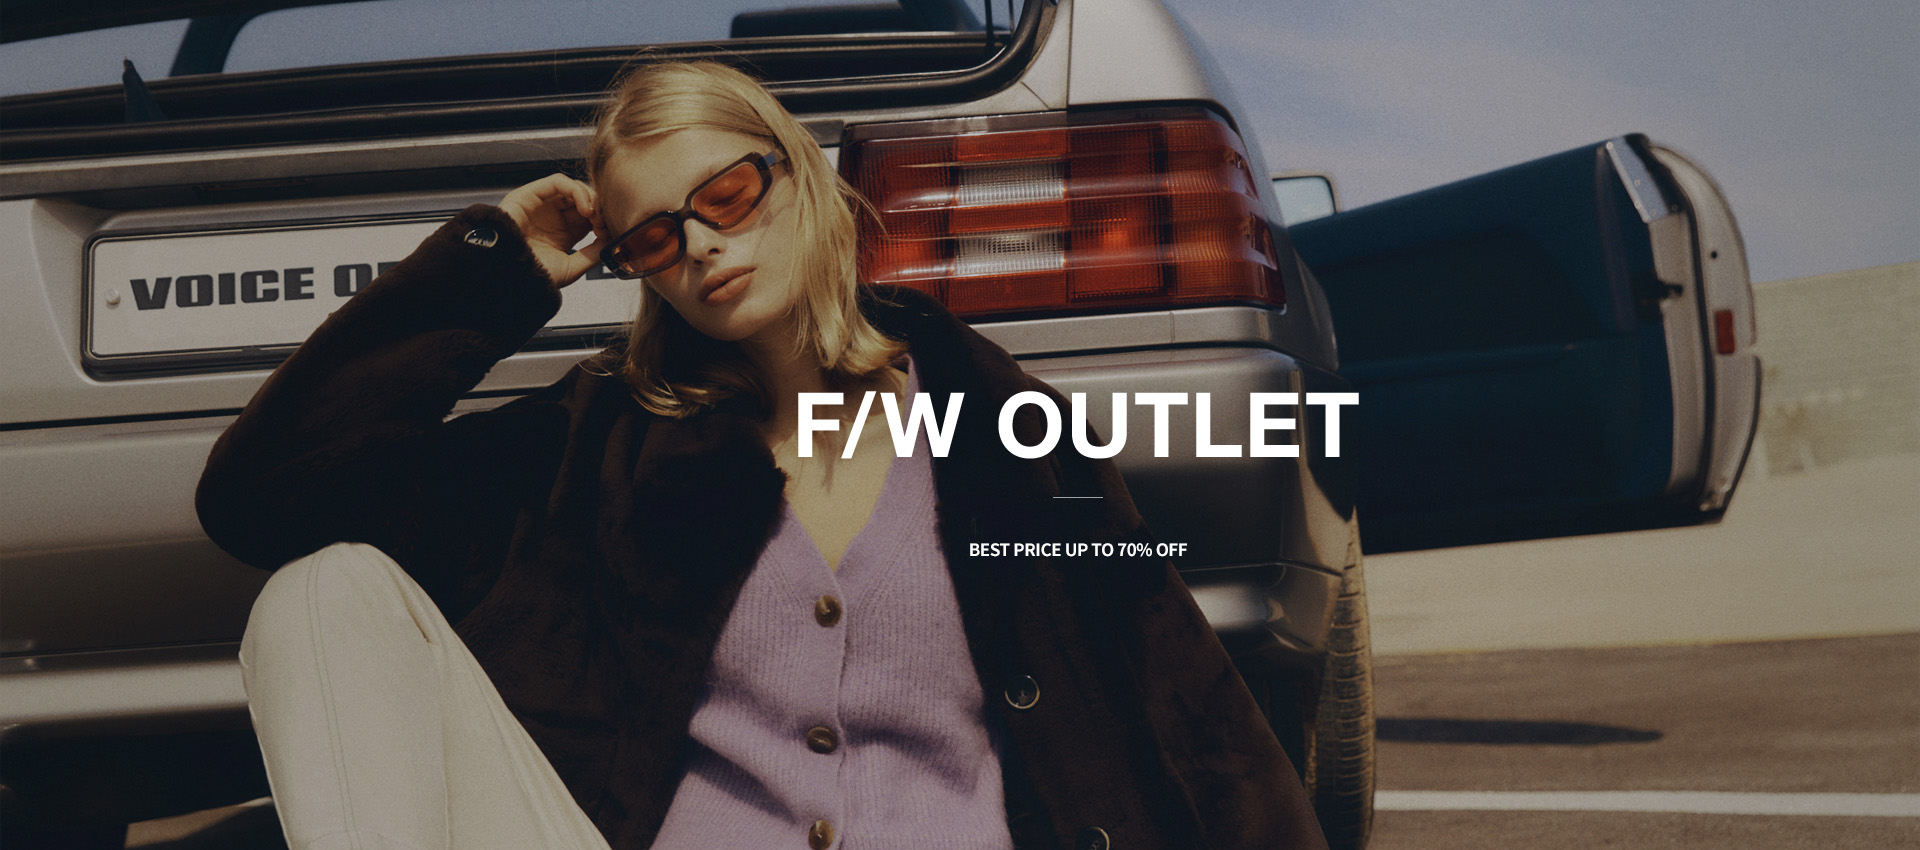 F/W OUTLET